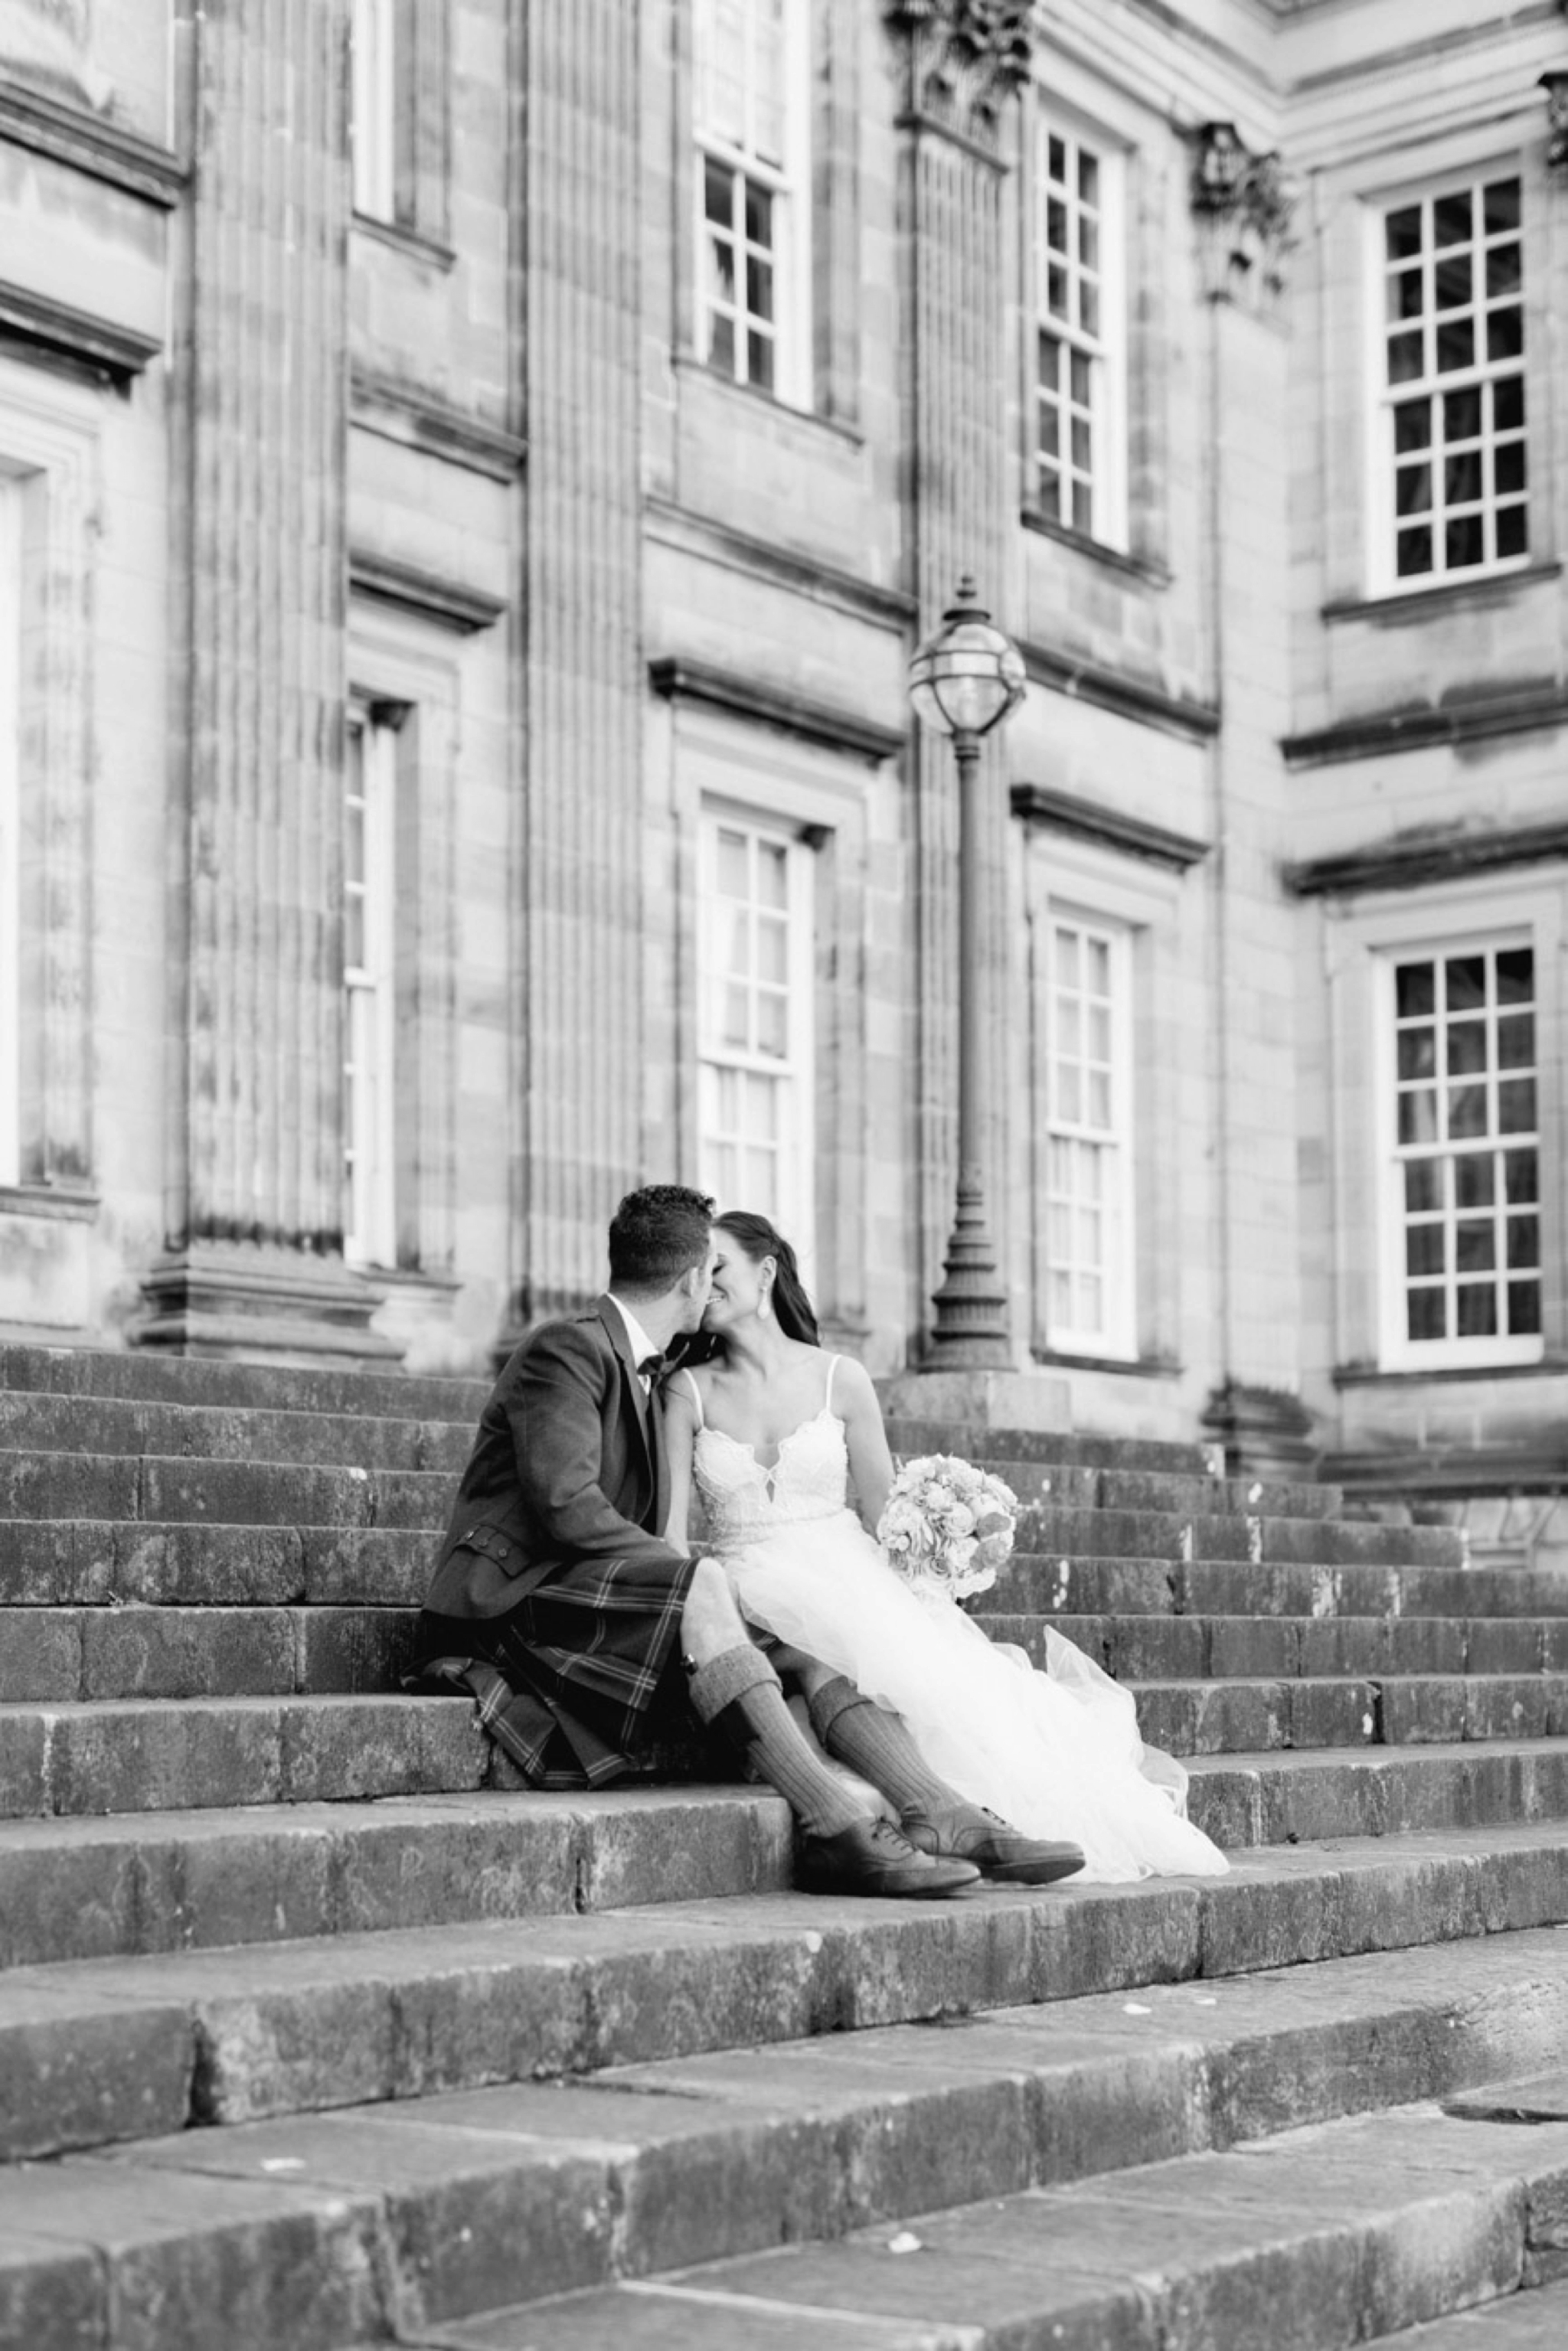 Suzanne_li_photography_hopetoun_house_0088.jpg